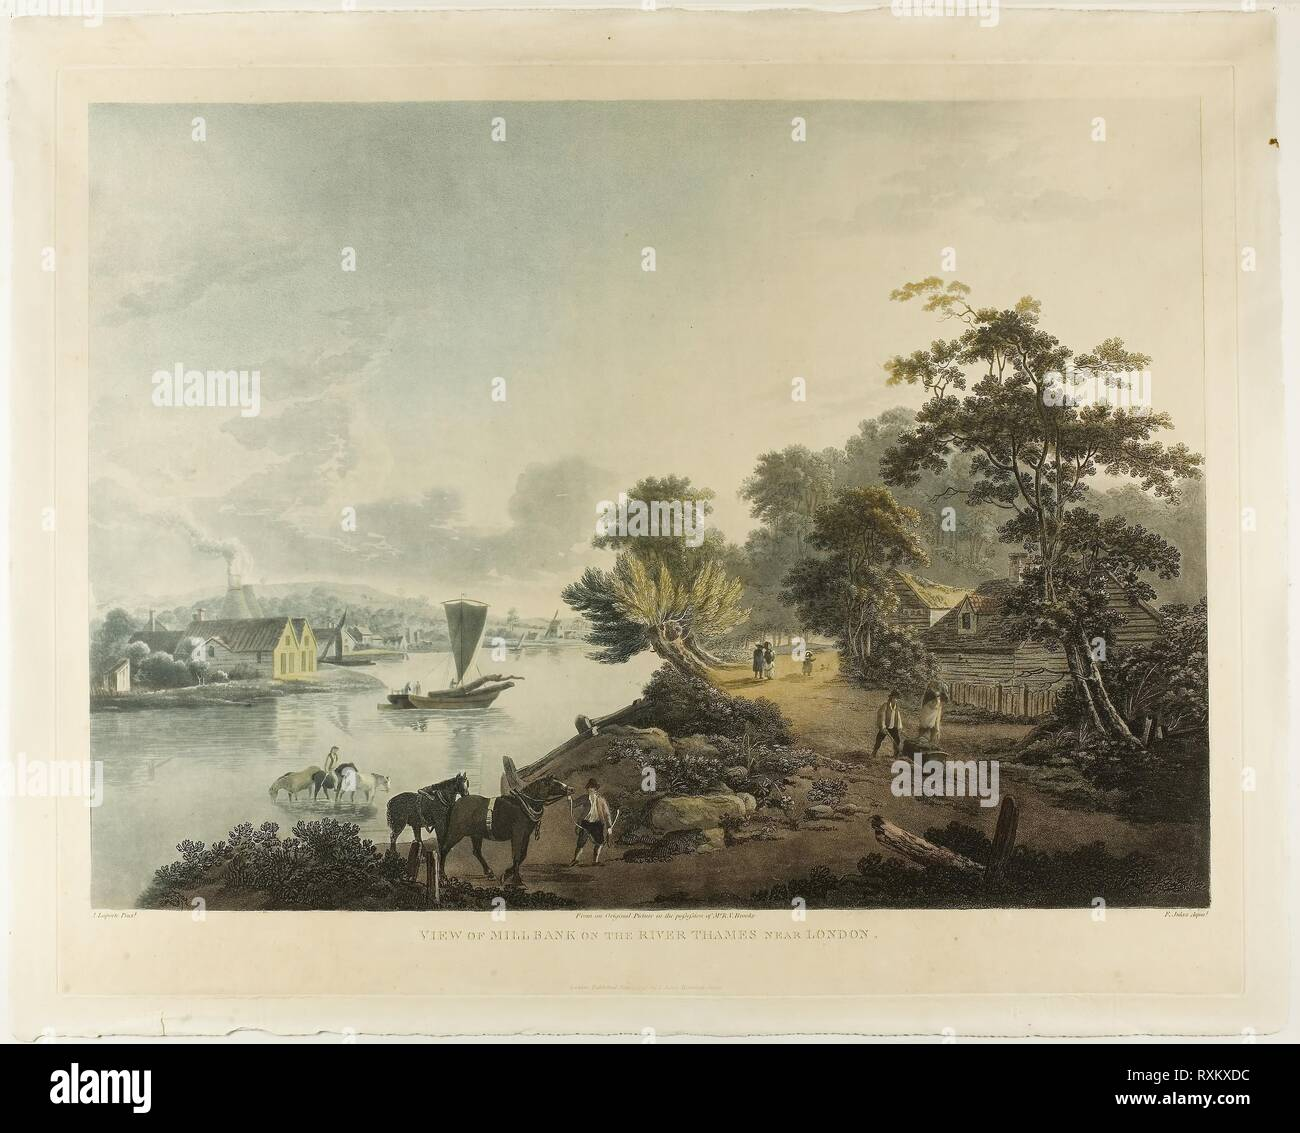 View of Hillbank on the River Thames near London. Francis Jukes (English, 1745-1812); after John Laporte (English, 1761-1839). Date: 1795. Dimensions: . Color aquatint on paper. Origin: England. Museum: The Chicago Art Institute. Stock Photo